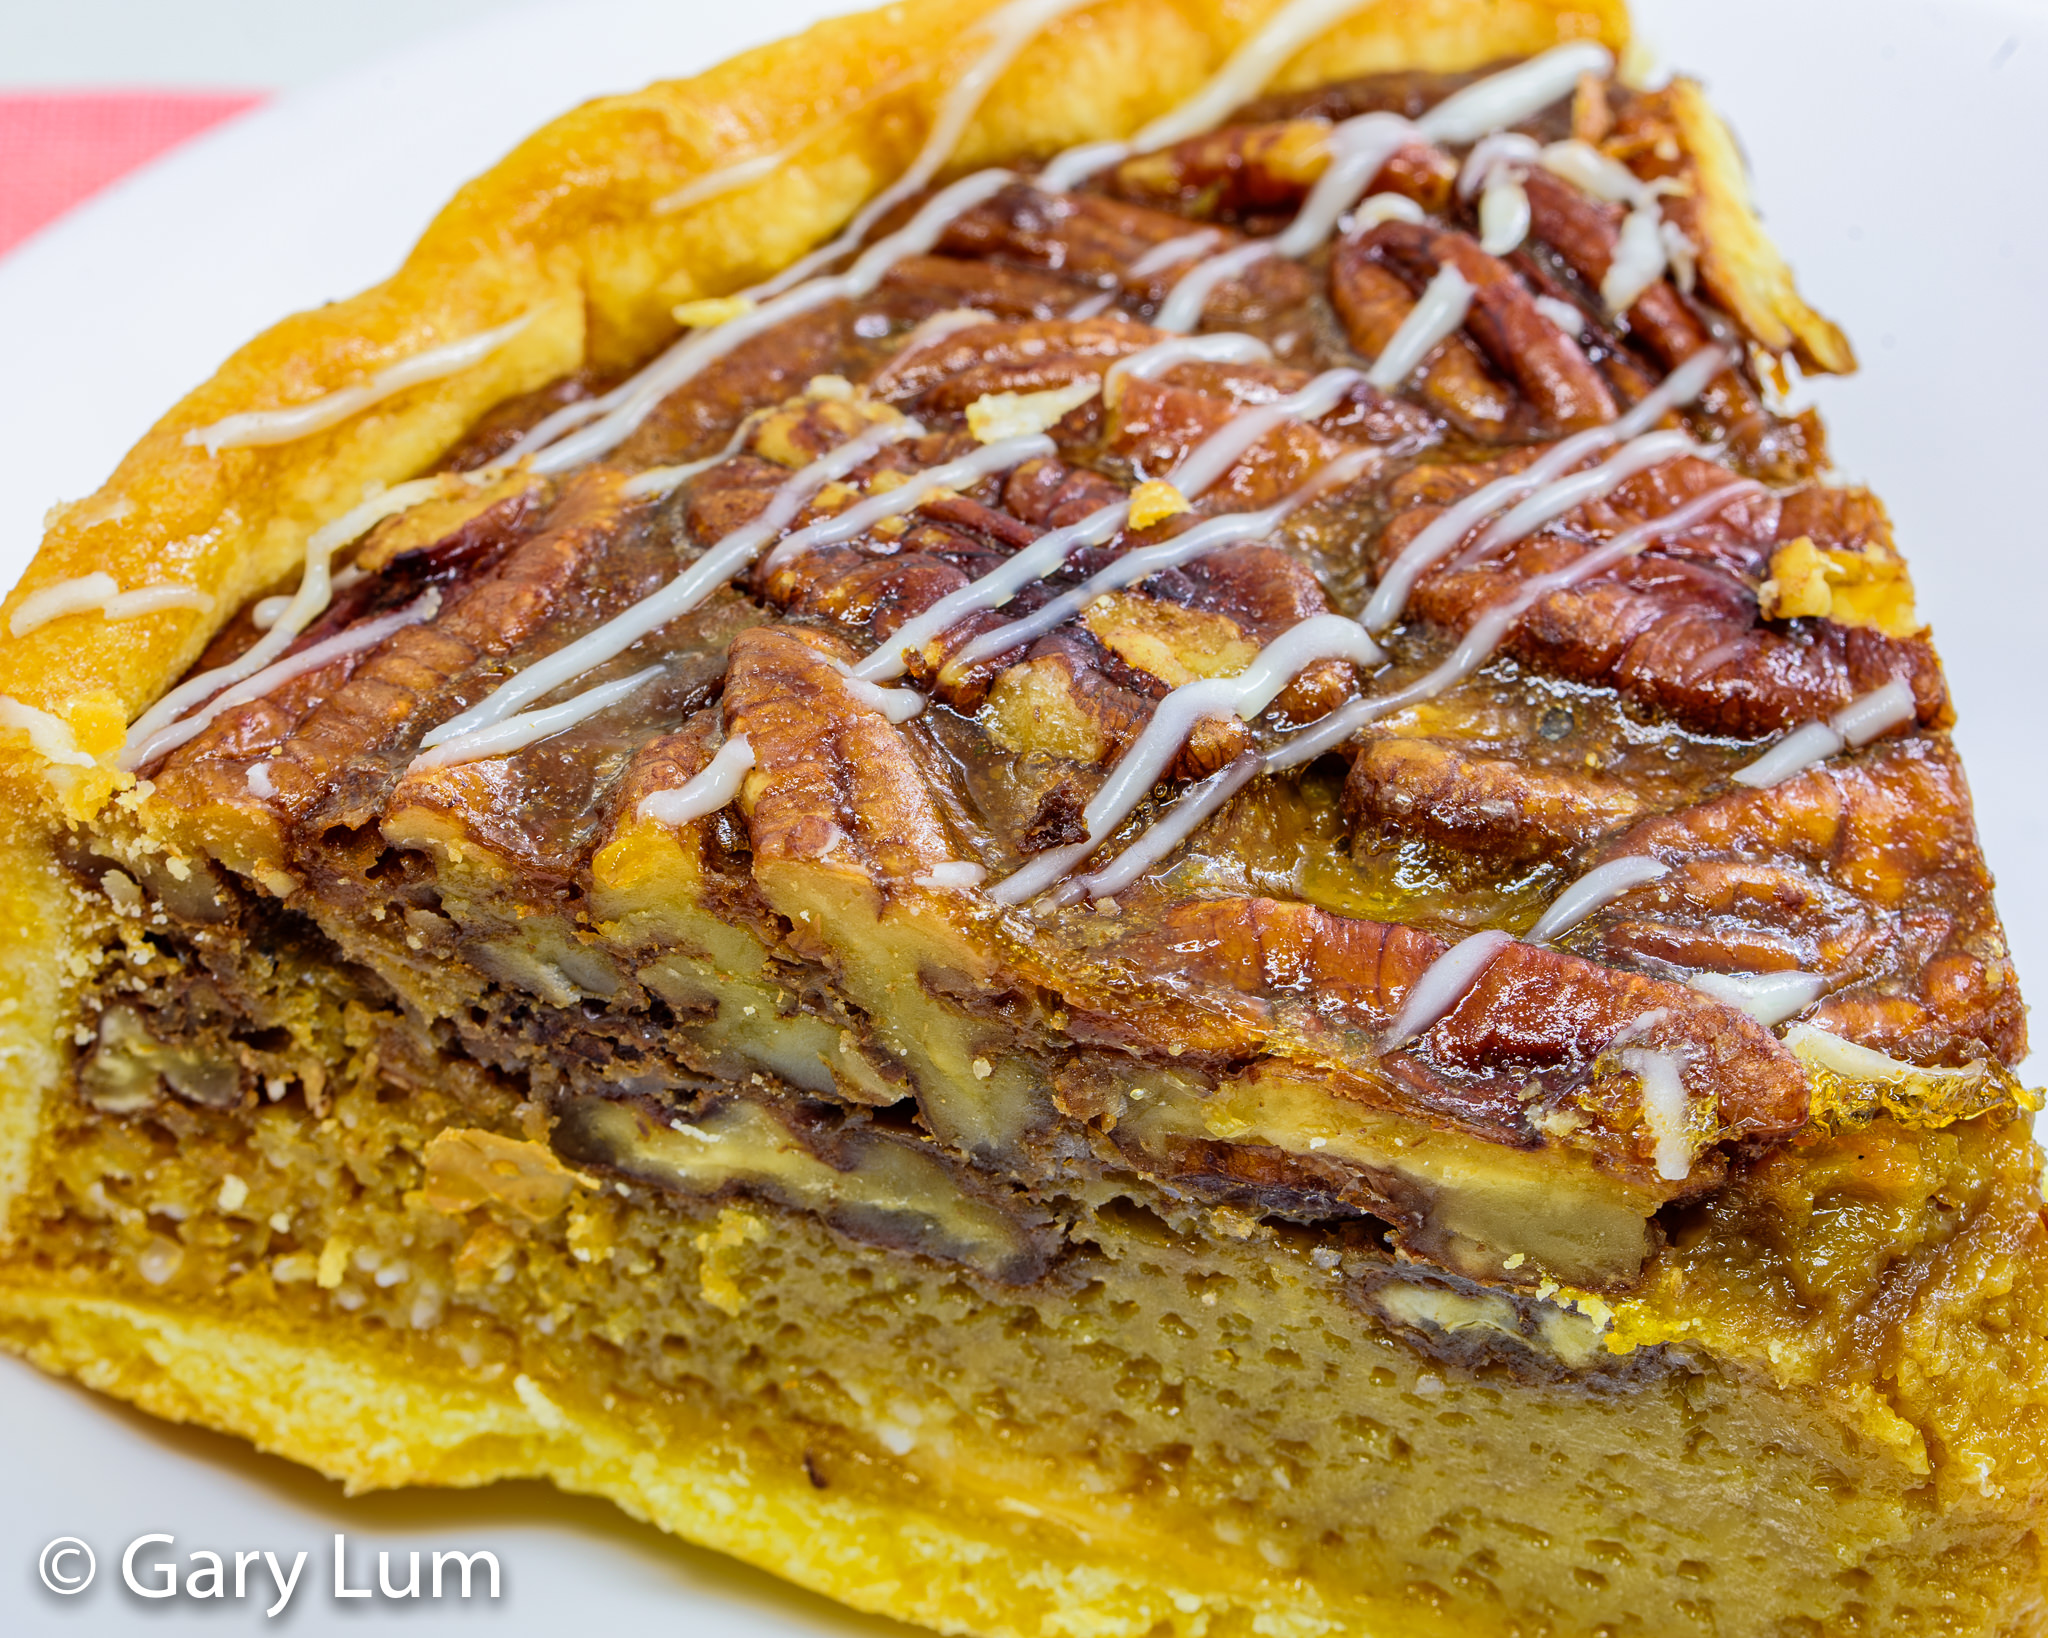 Pecan pie from Dobinsons Bakery. Gary Lum.